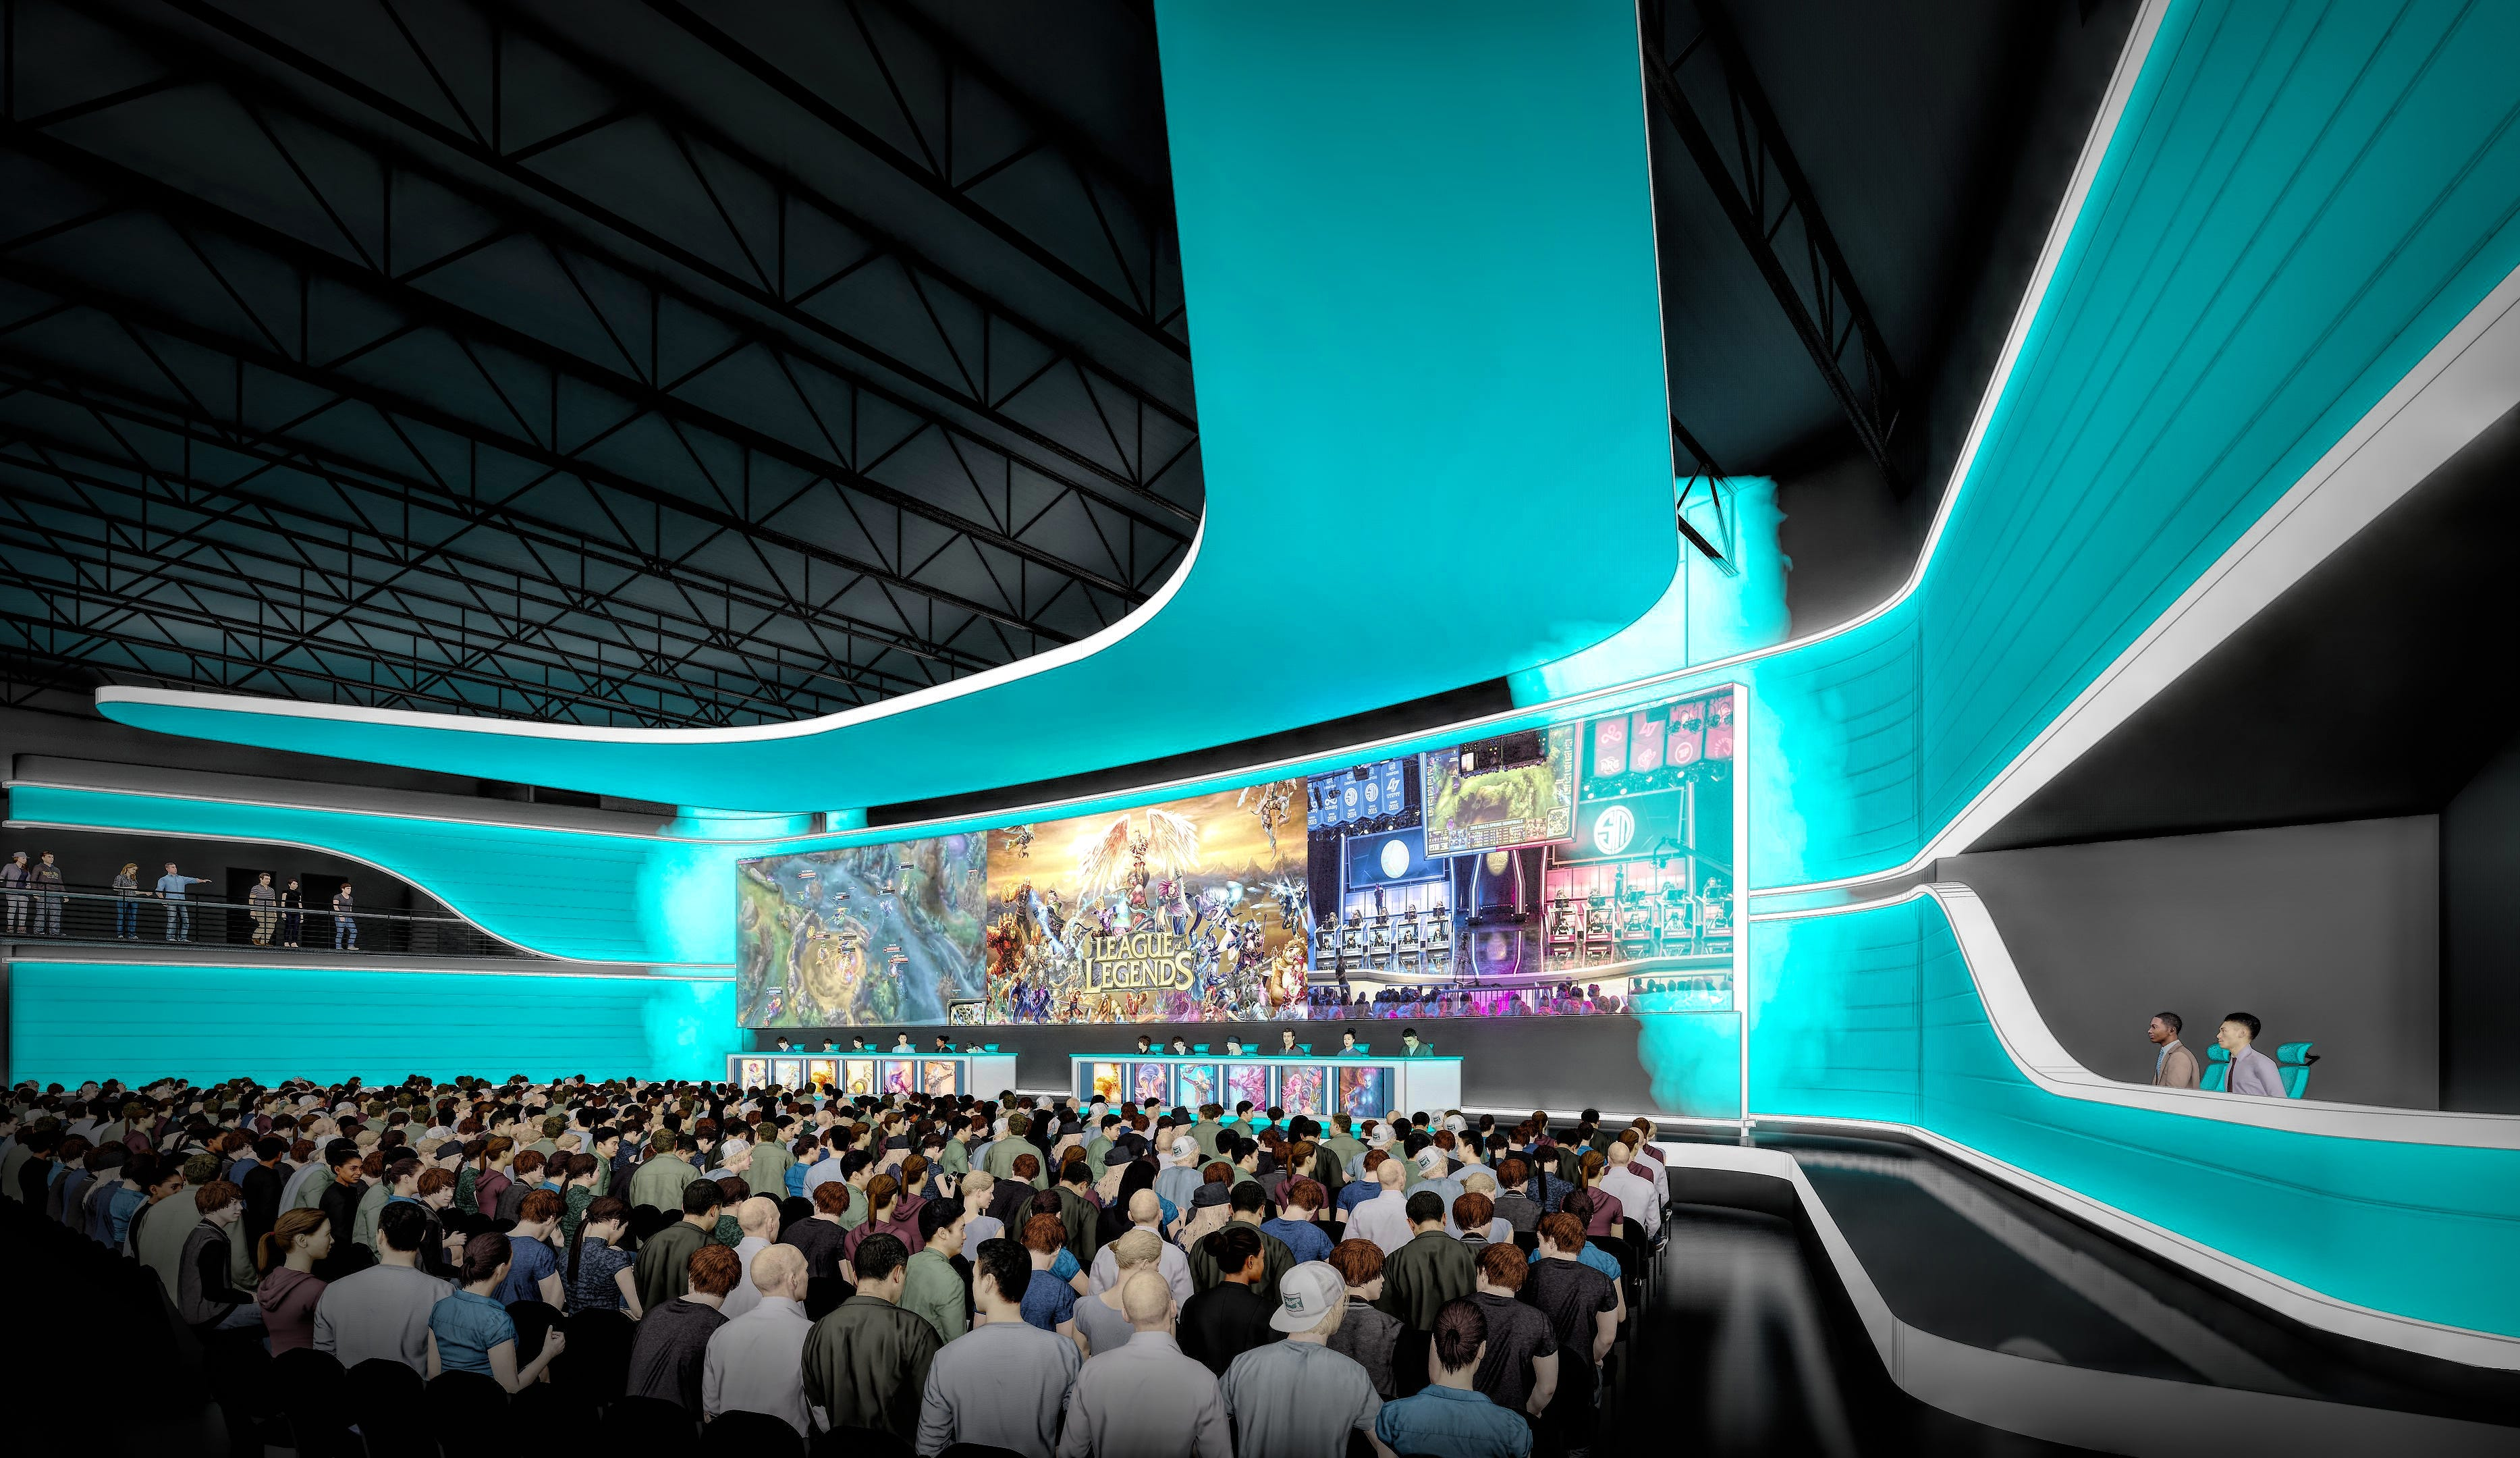 Cedar Point's parent company is developing an esports arena with 200 gaming stations